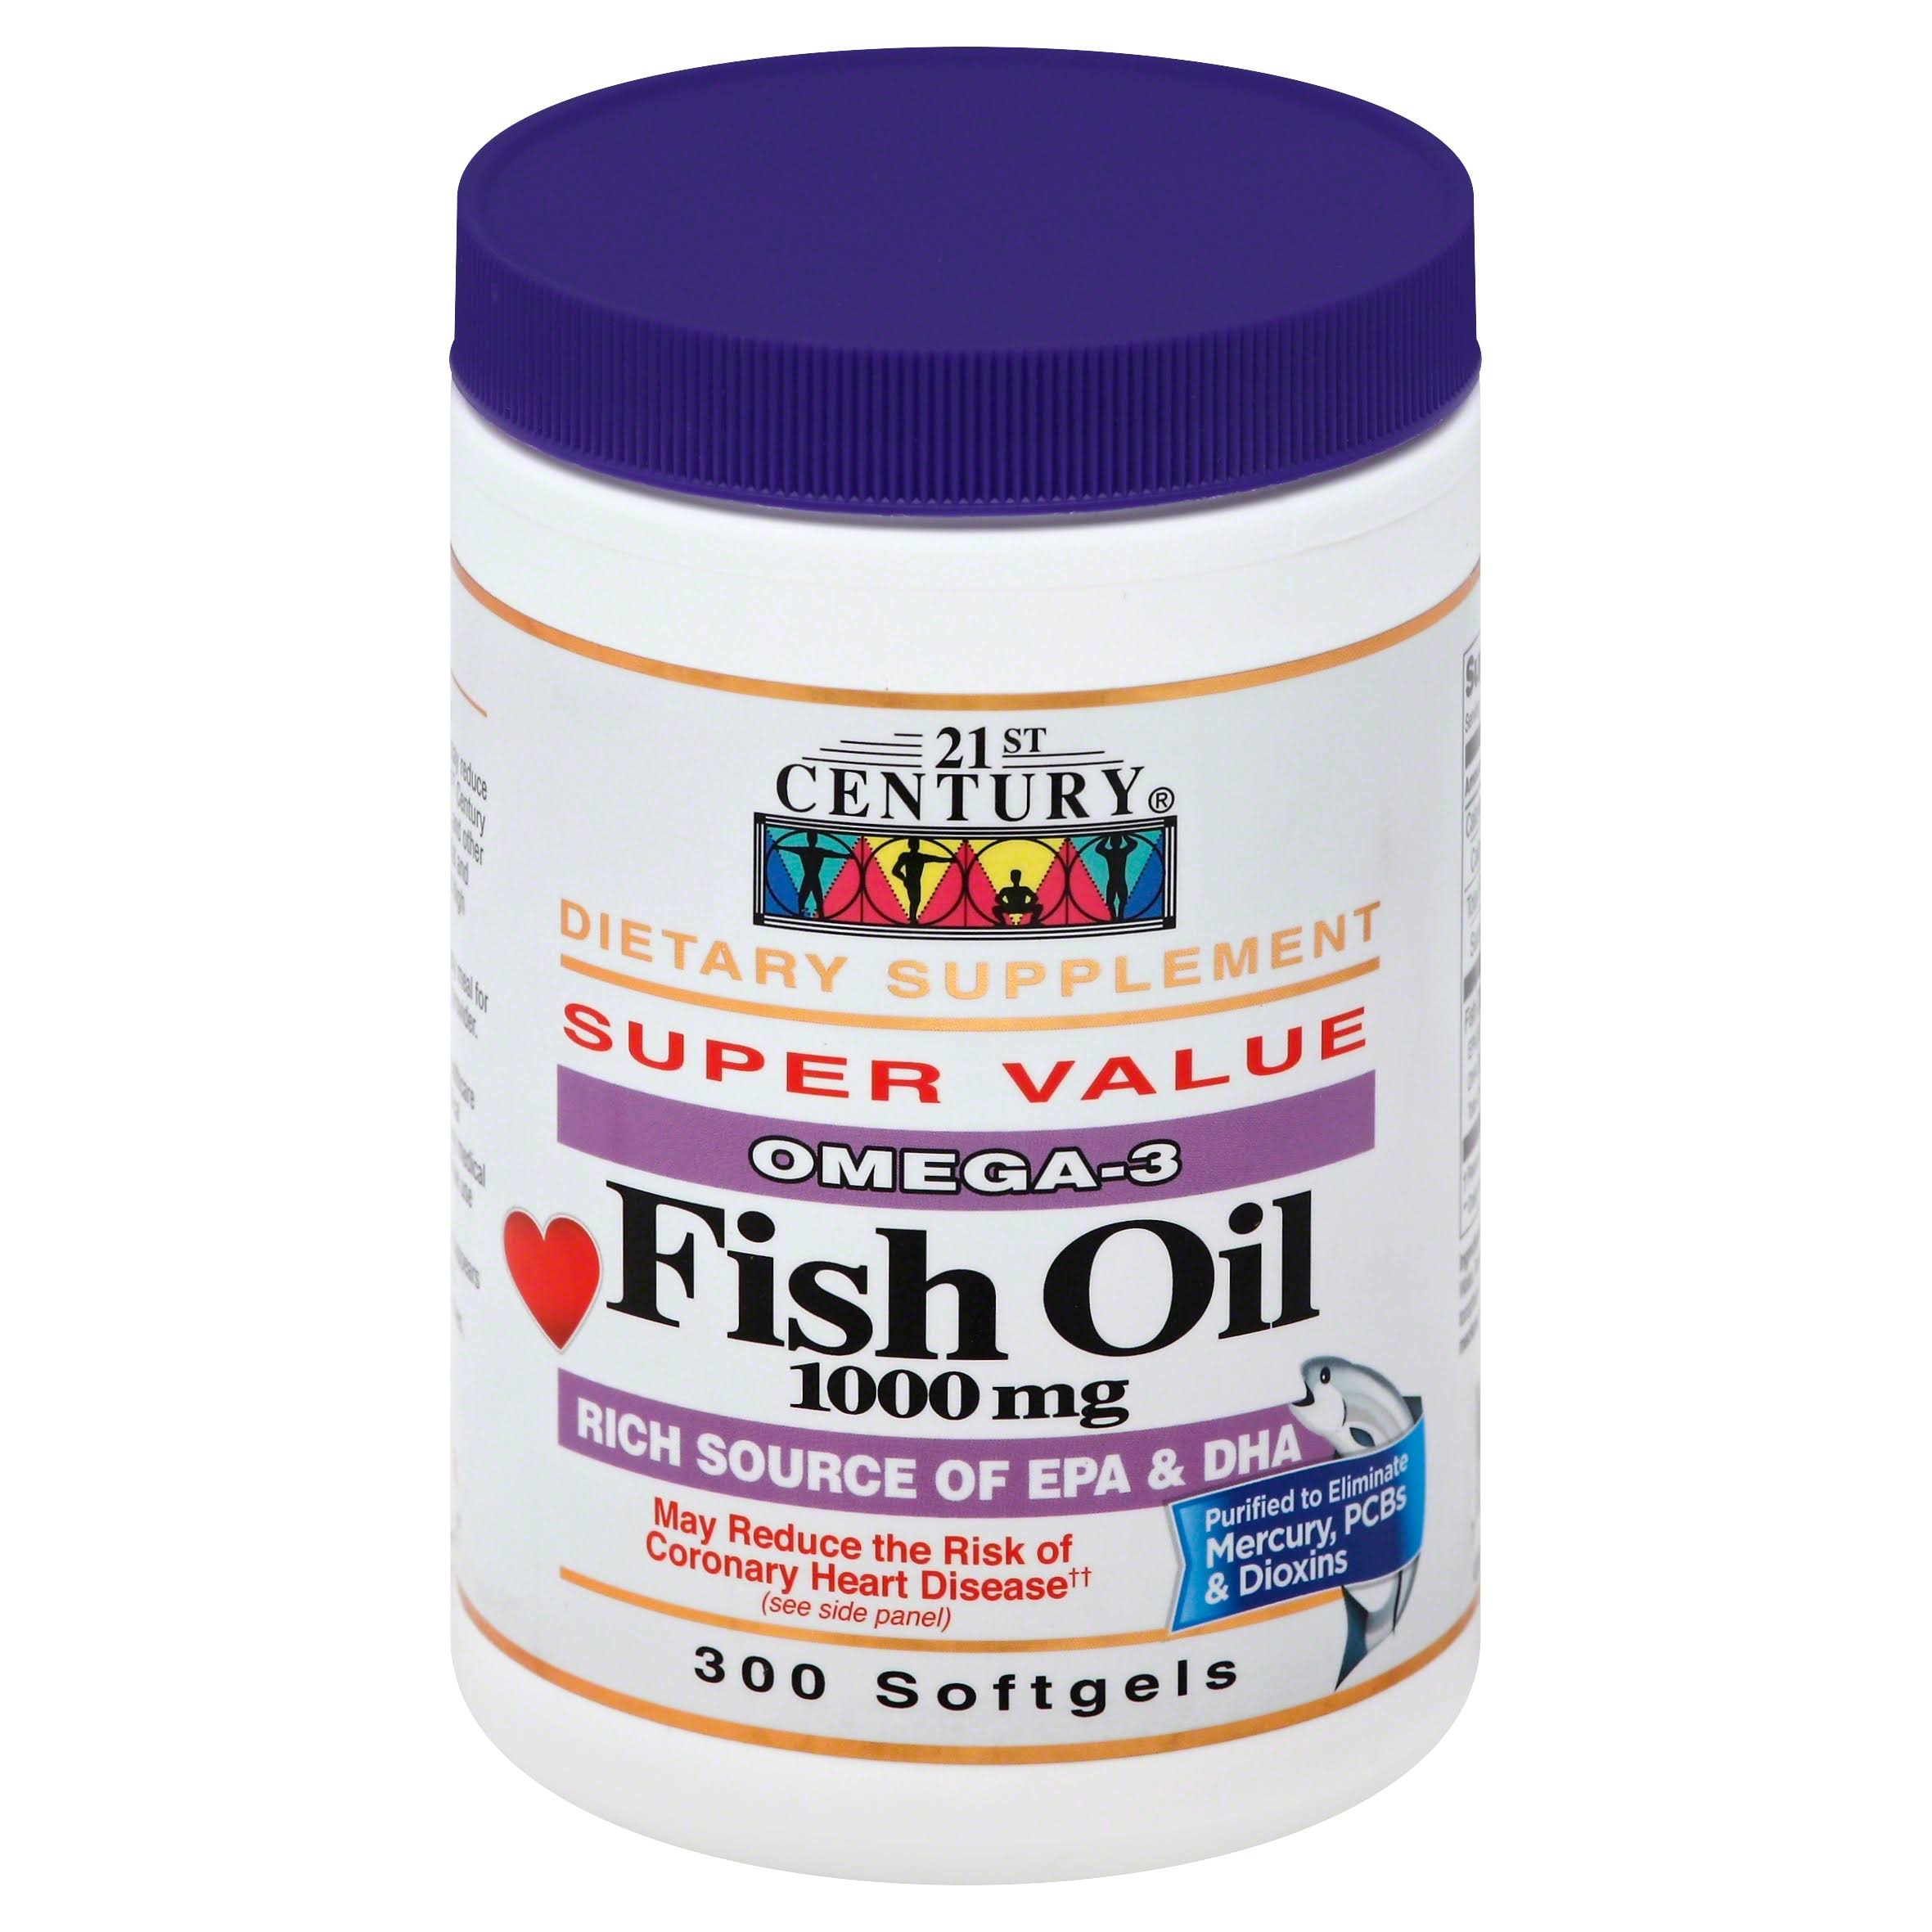 21st Century Fish Oil 1000mg Softgels - x300